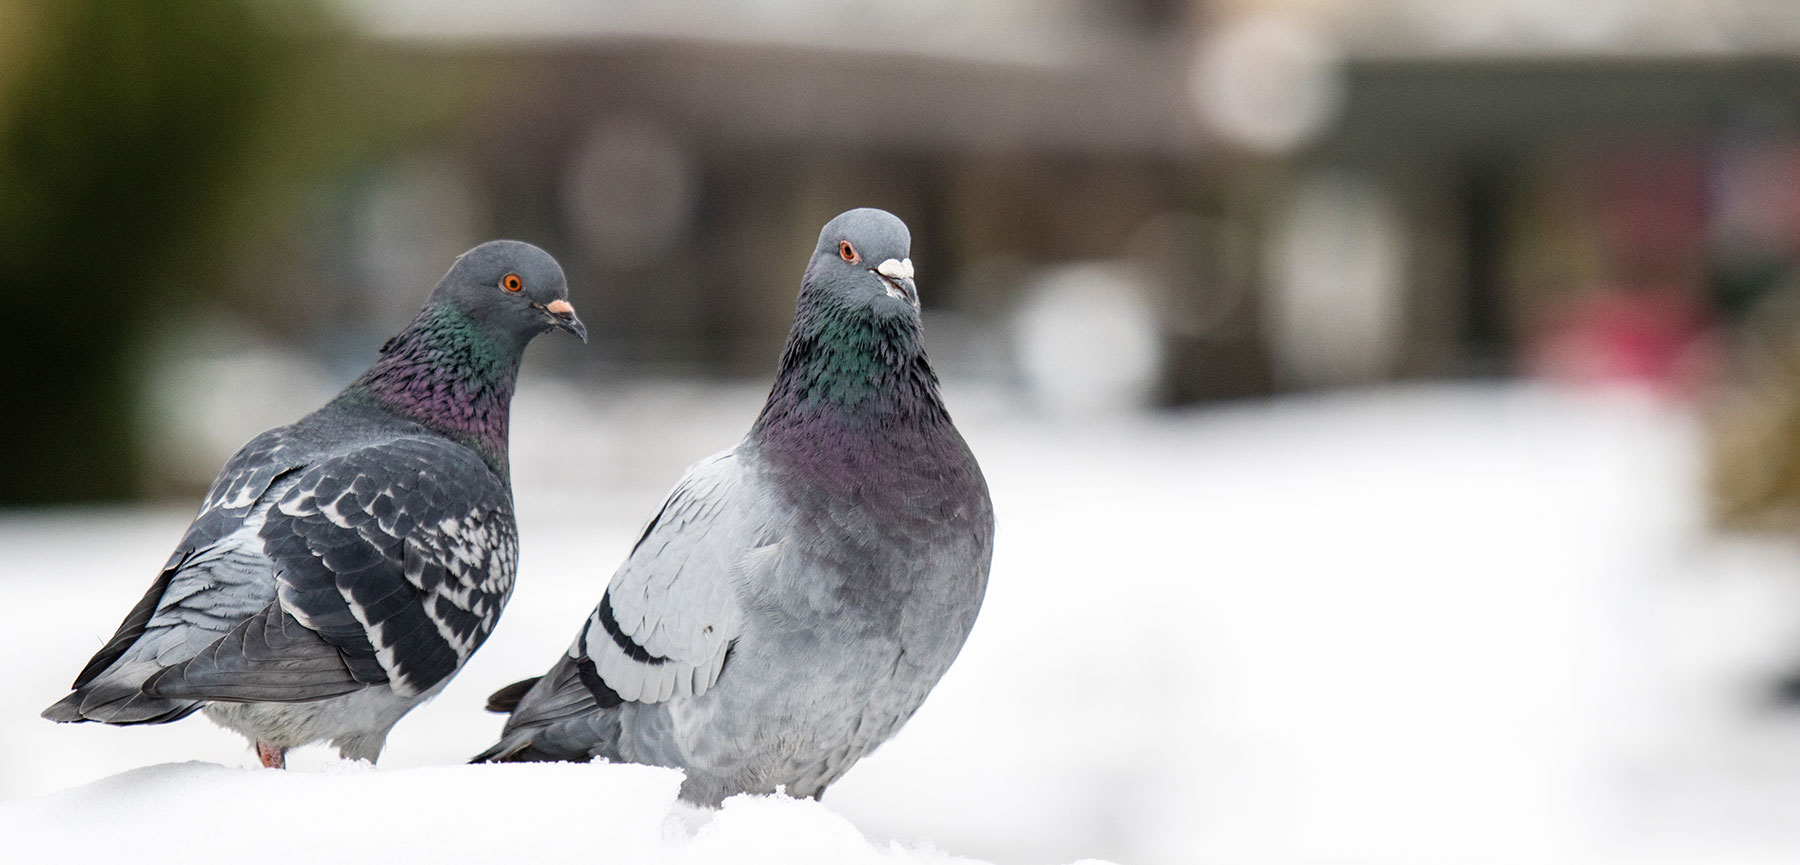 Why You Should Love NYC Pigeons